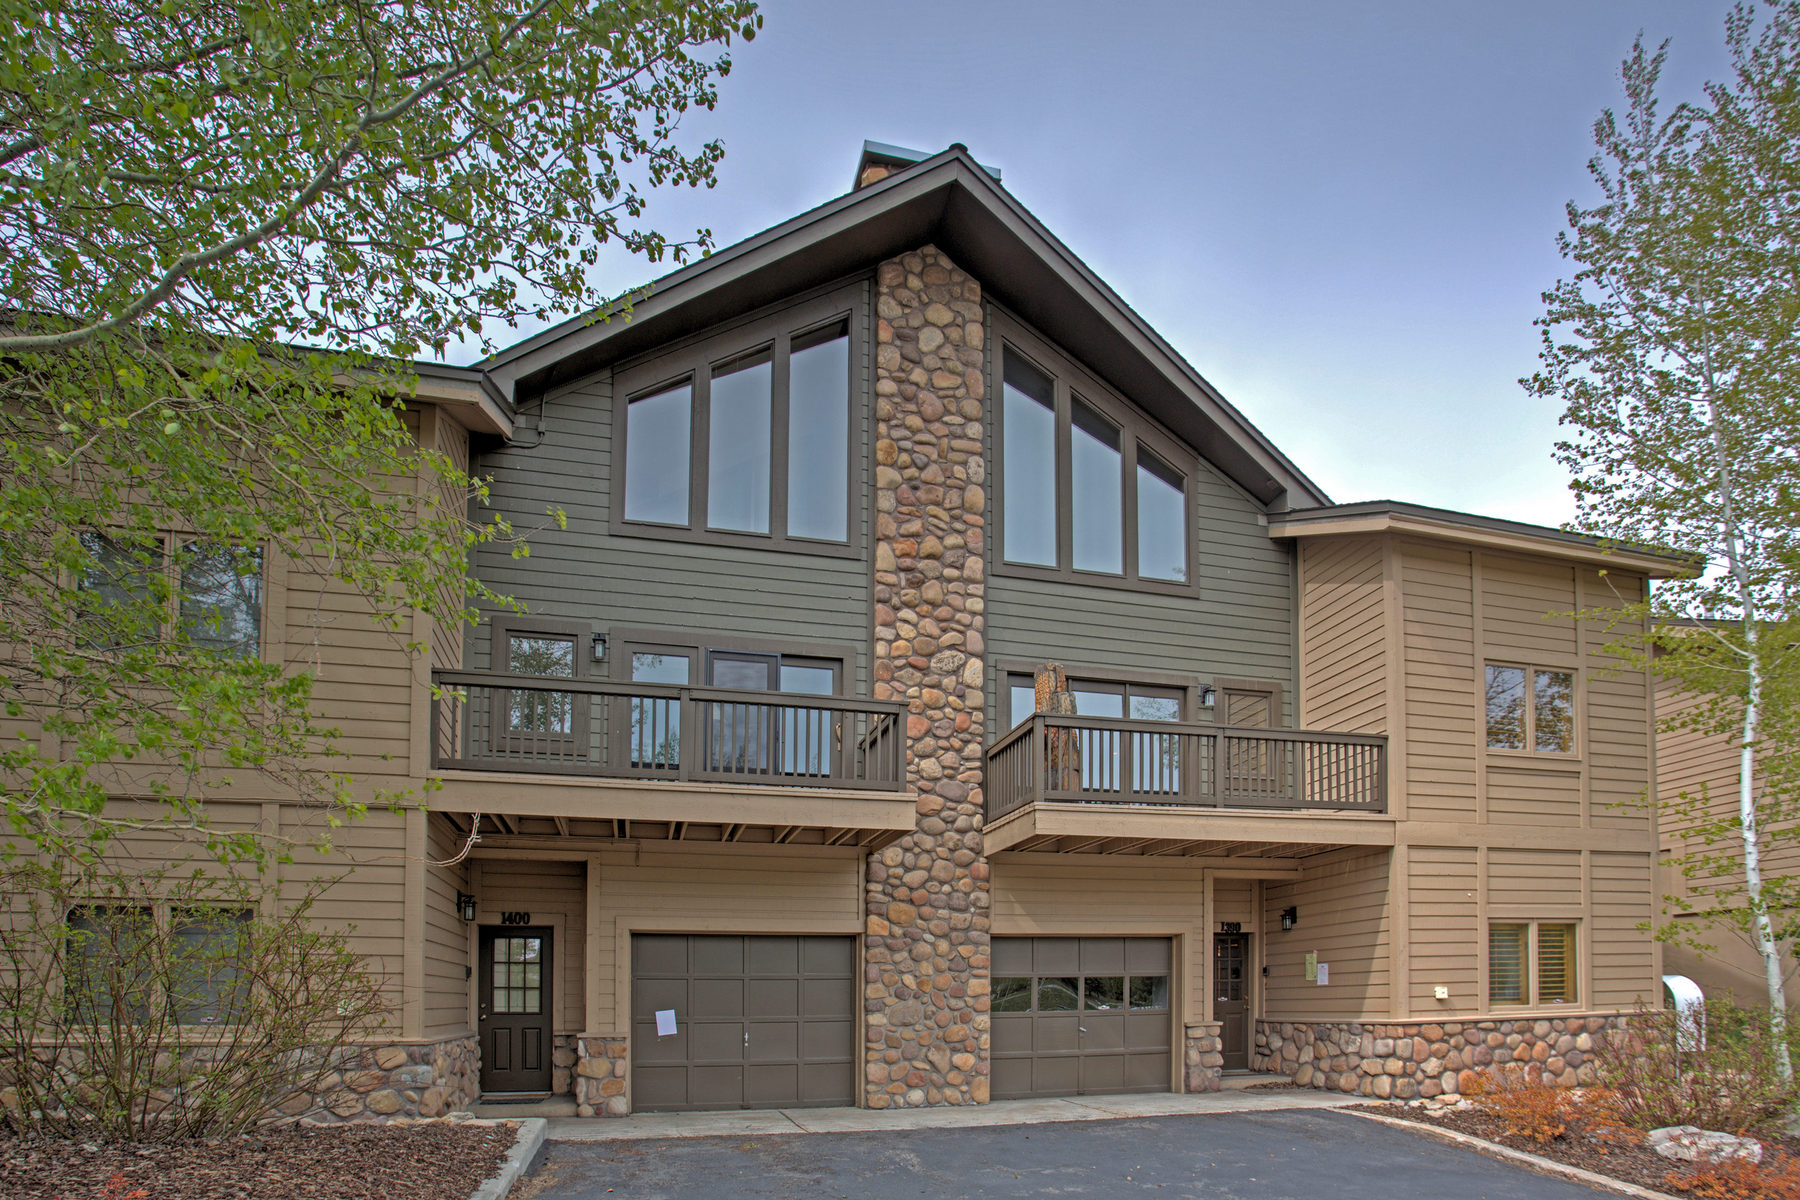 共管式独立产权公寓 为 销售 在 Lovely Remodeled 4 Bedroom Aspen Wood Condominium 1390 Deer Valley Dr #13 Park City, 犹他州 84060 美国